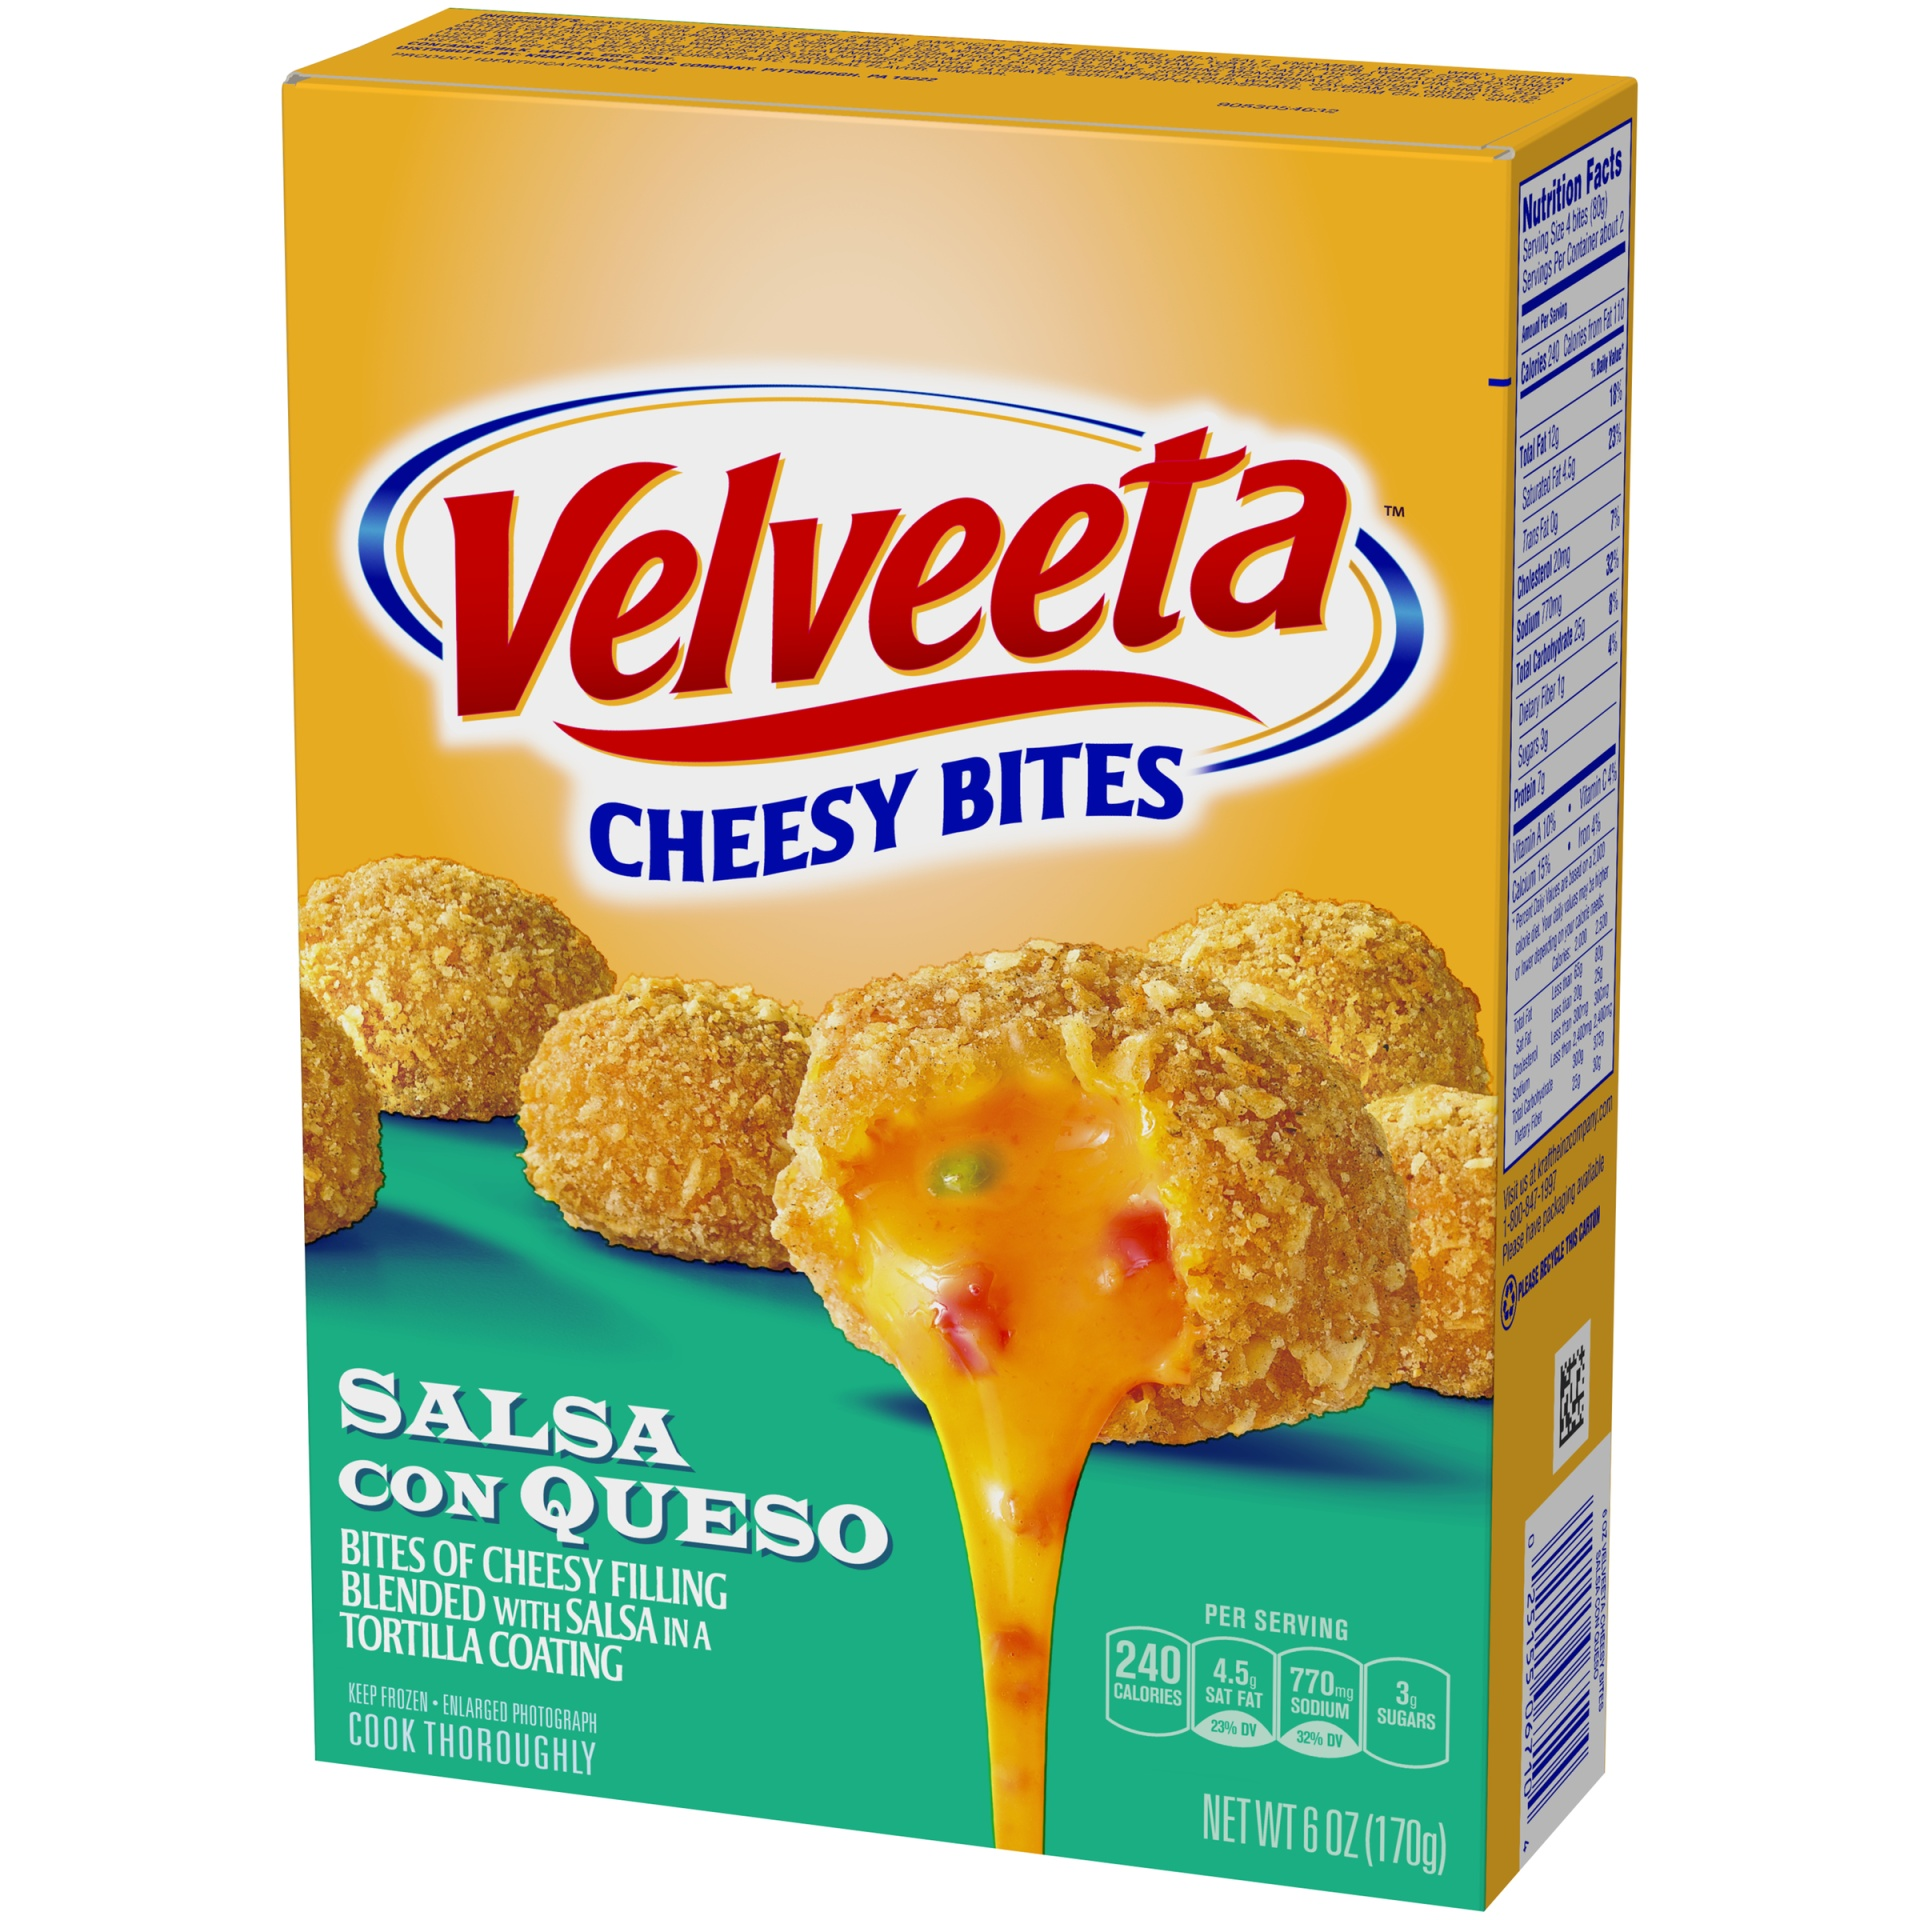 slide 3 of 6, Velveeta Salsa con Queso Cheesy Bites,